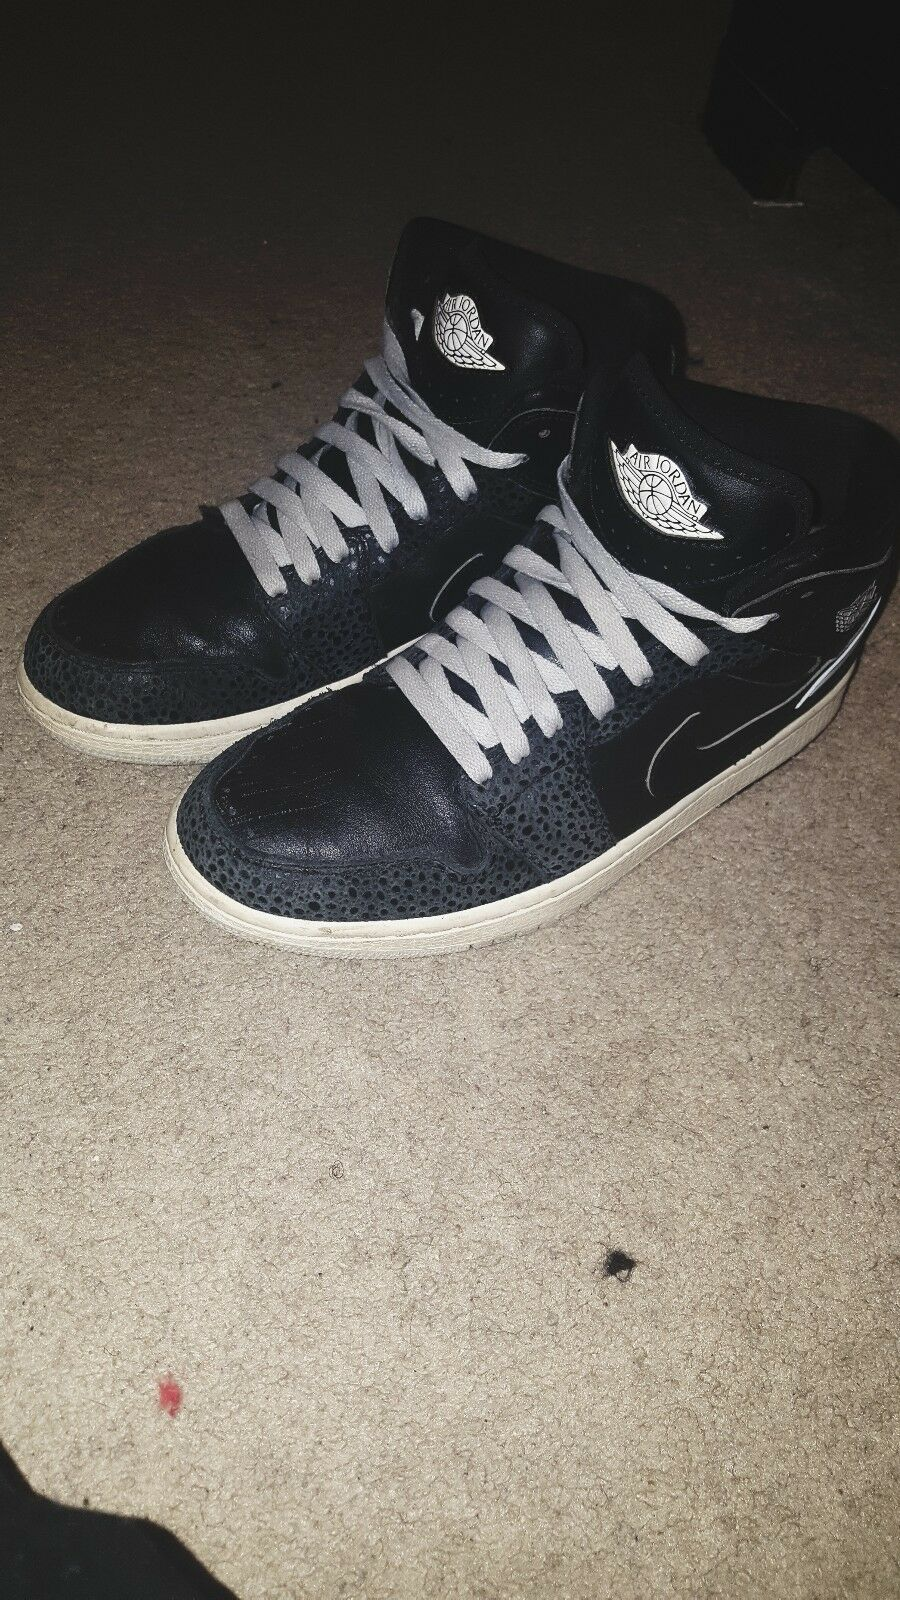 Retro Jordan 1's. Size 7y. Wore Once, great condition. Low Price.